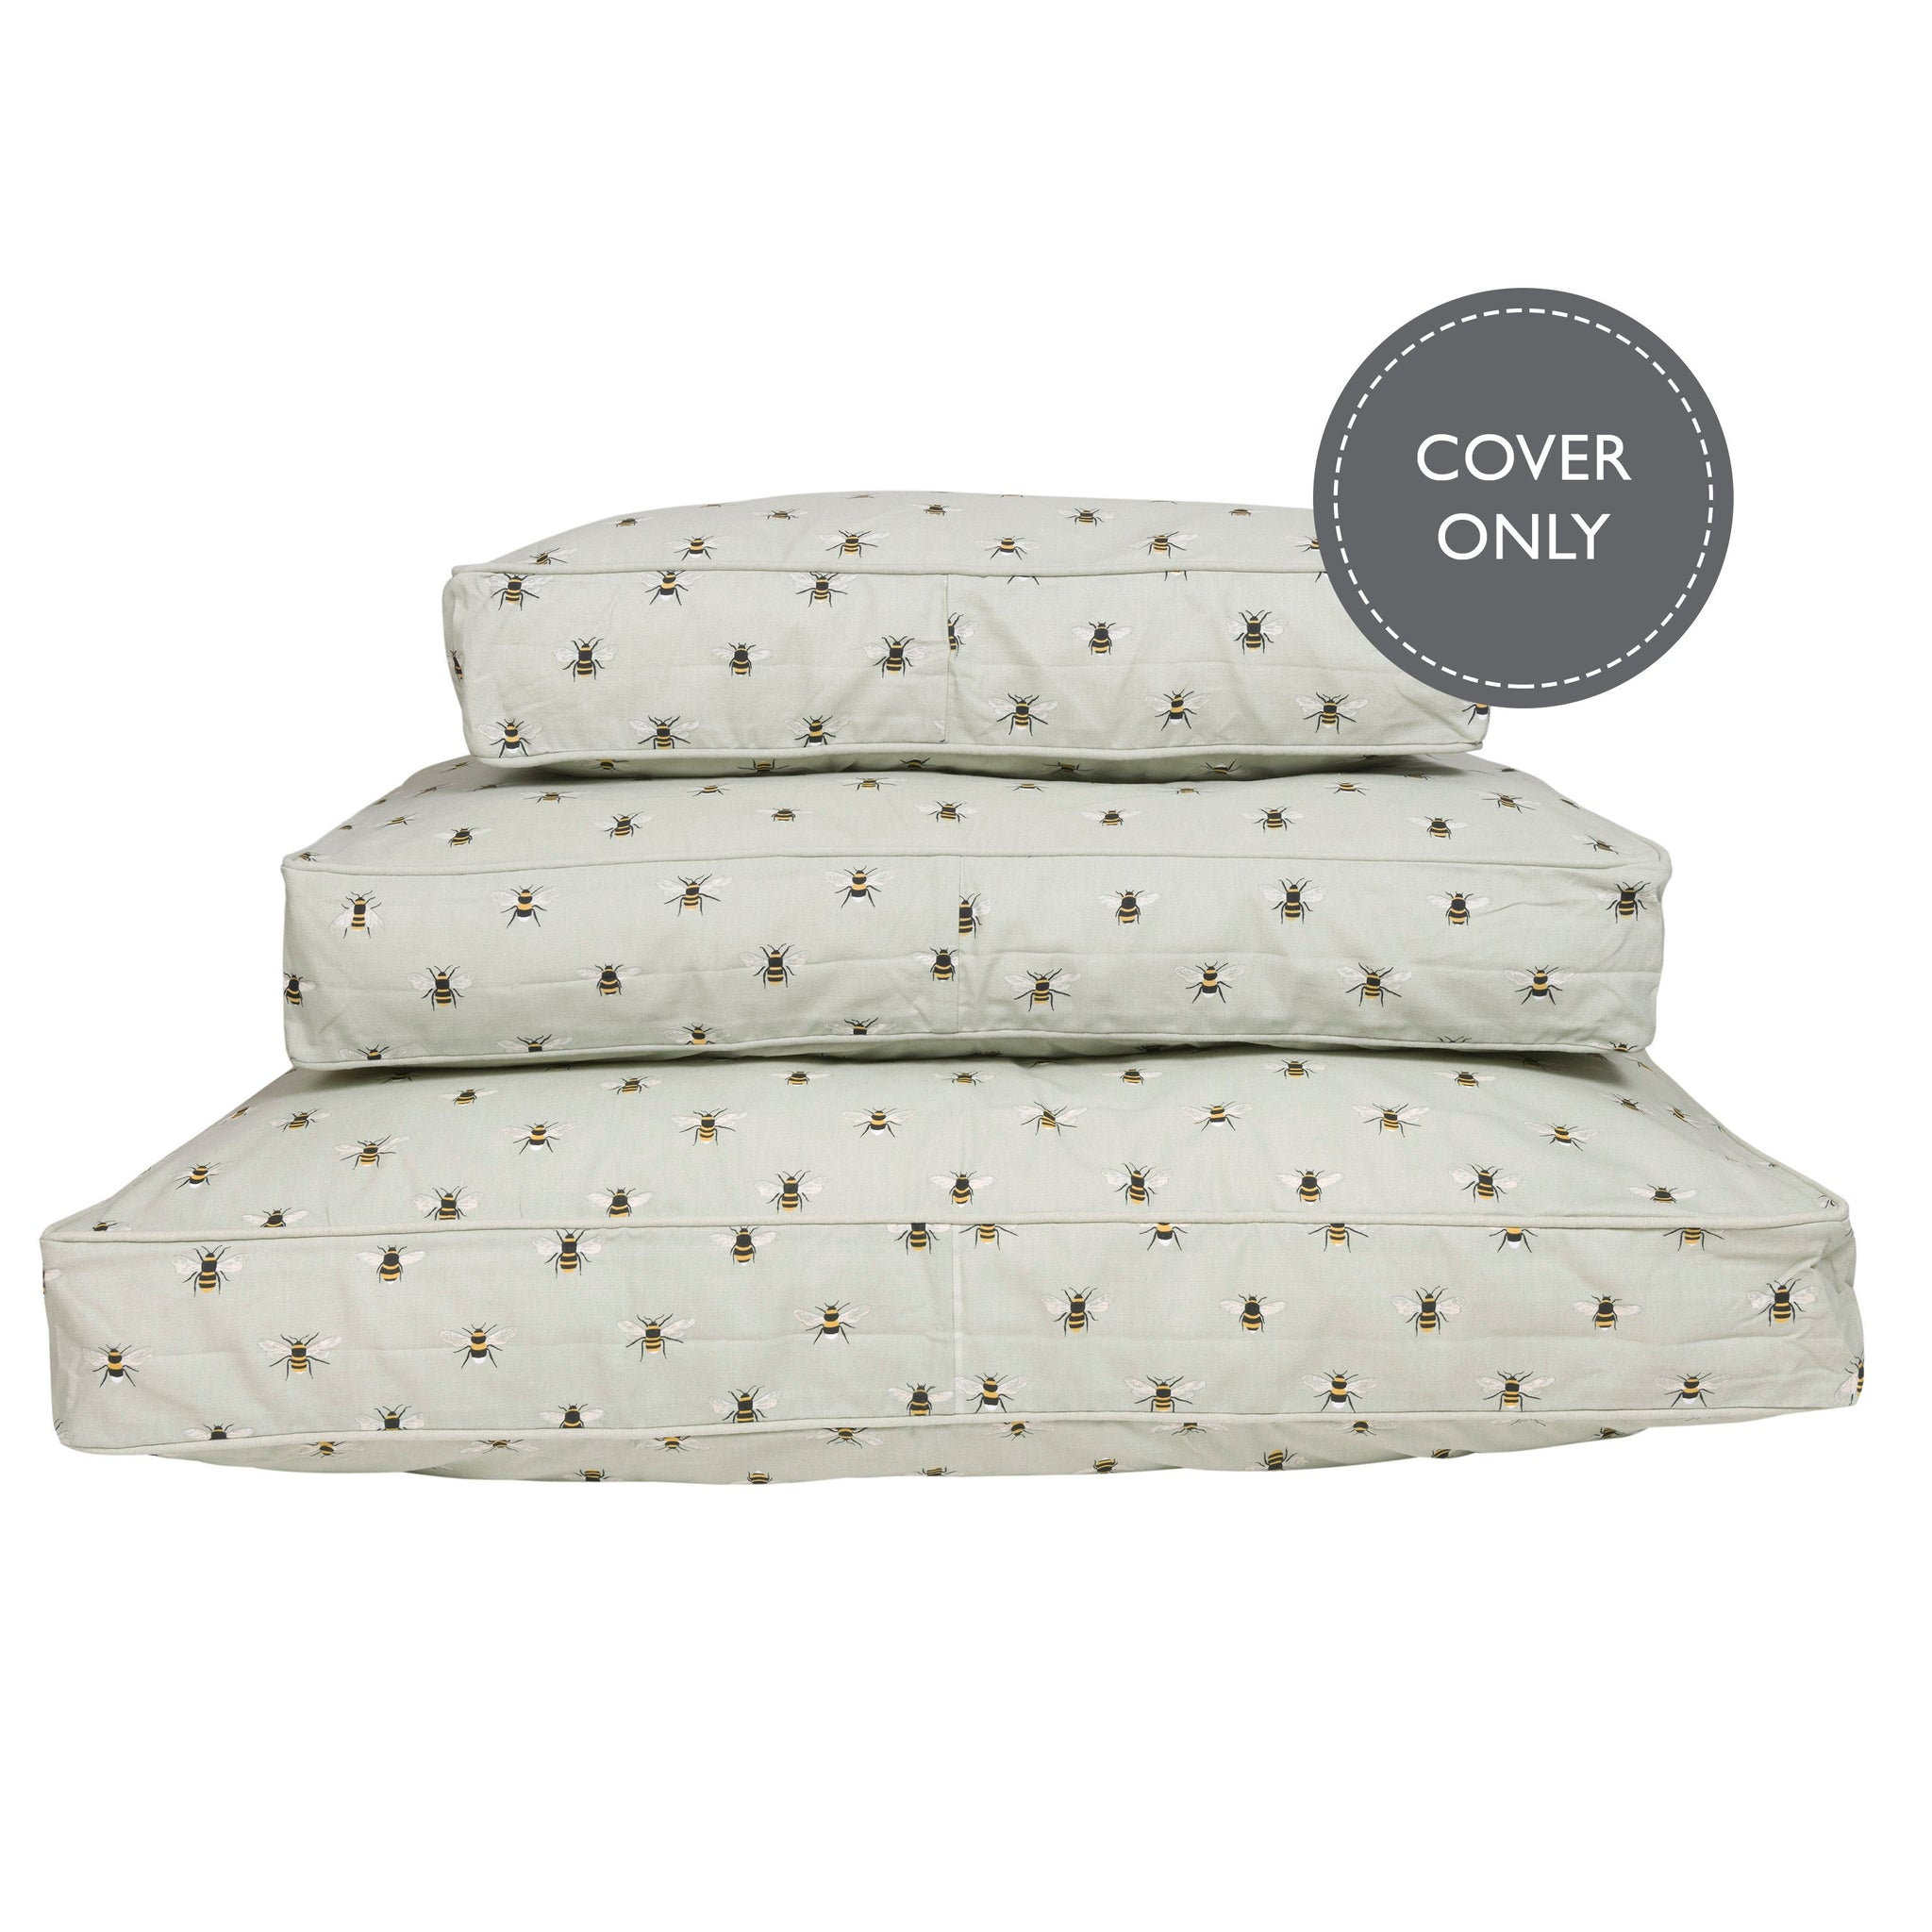 Bees Pet Mattress Cover by Sophie Allport